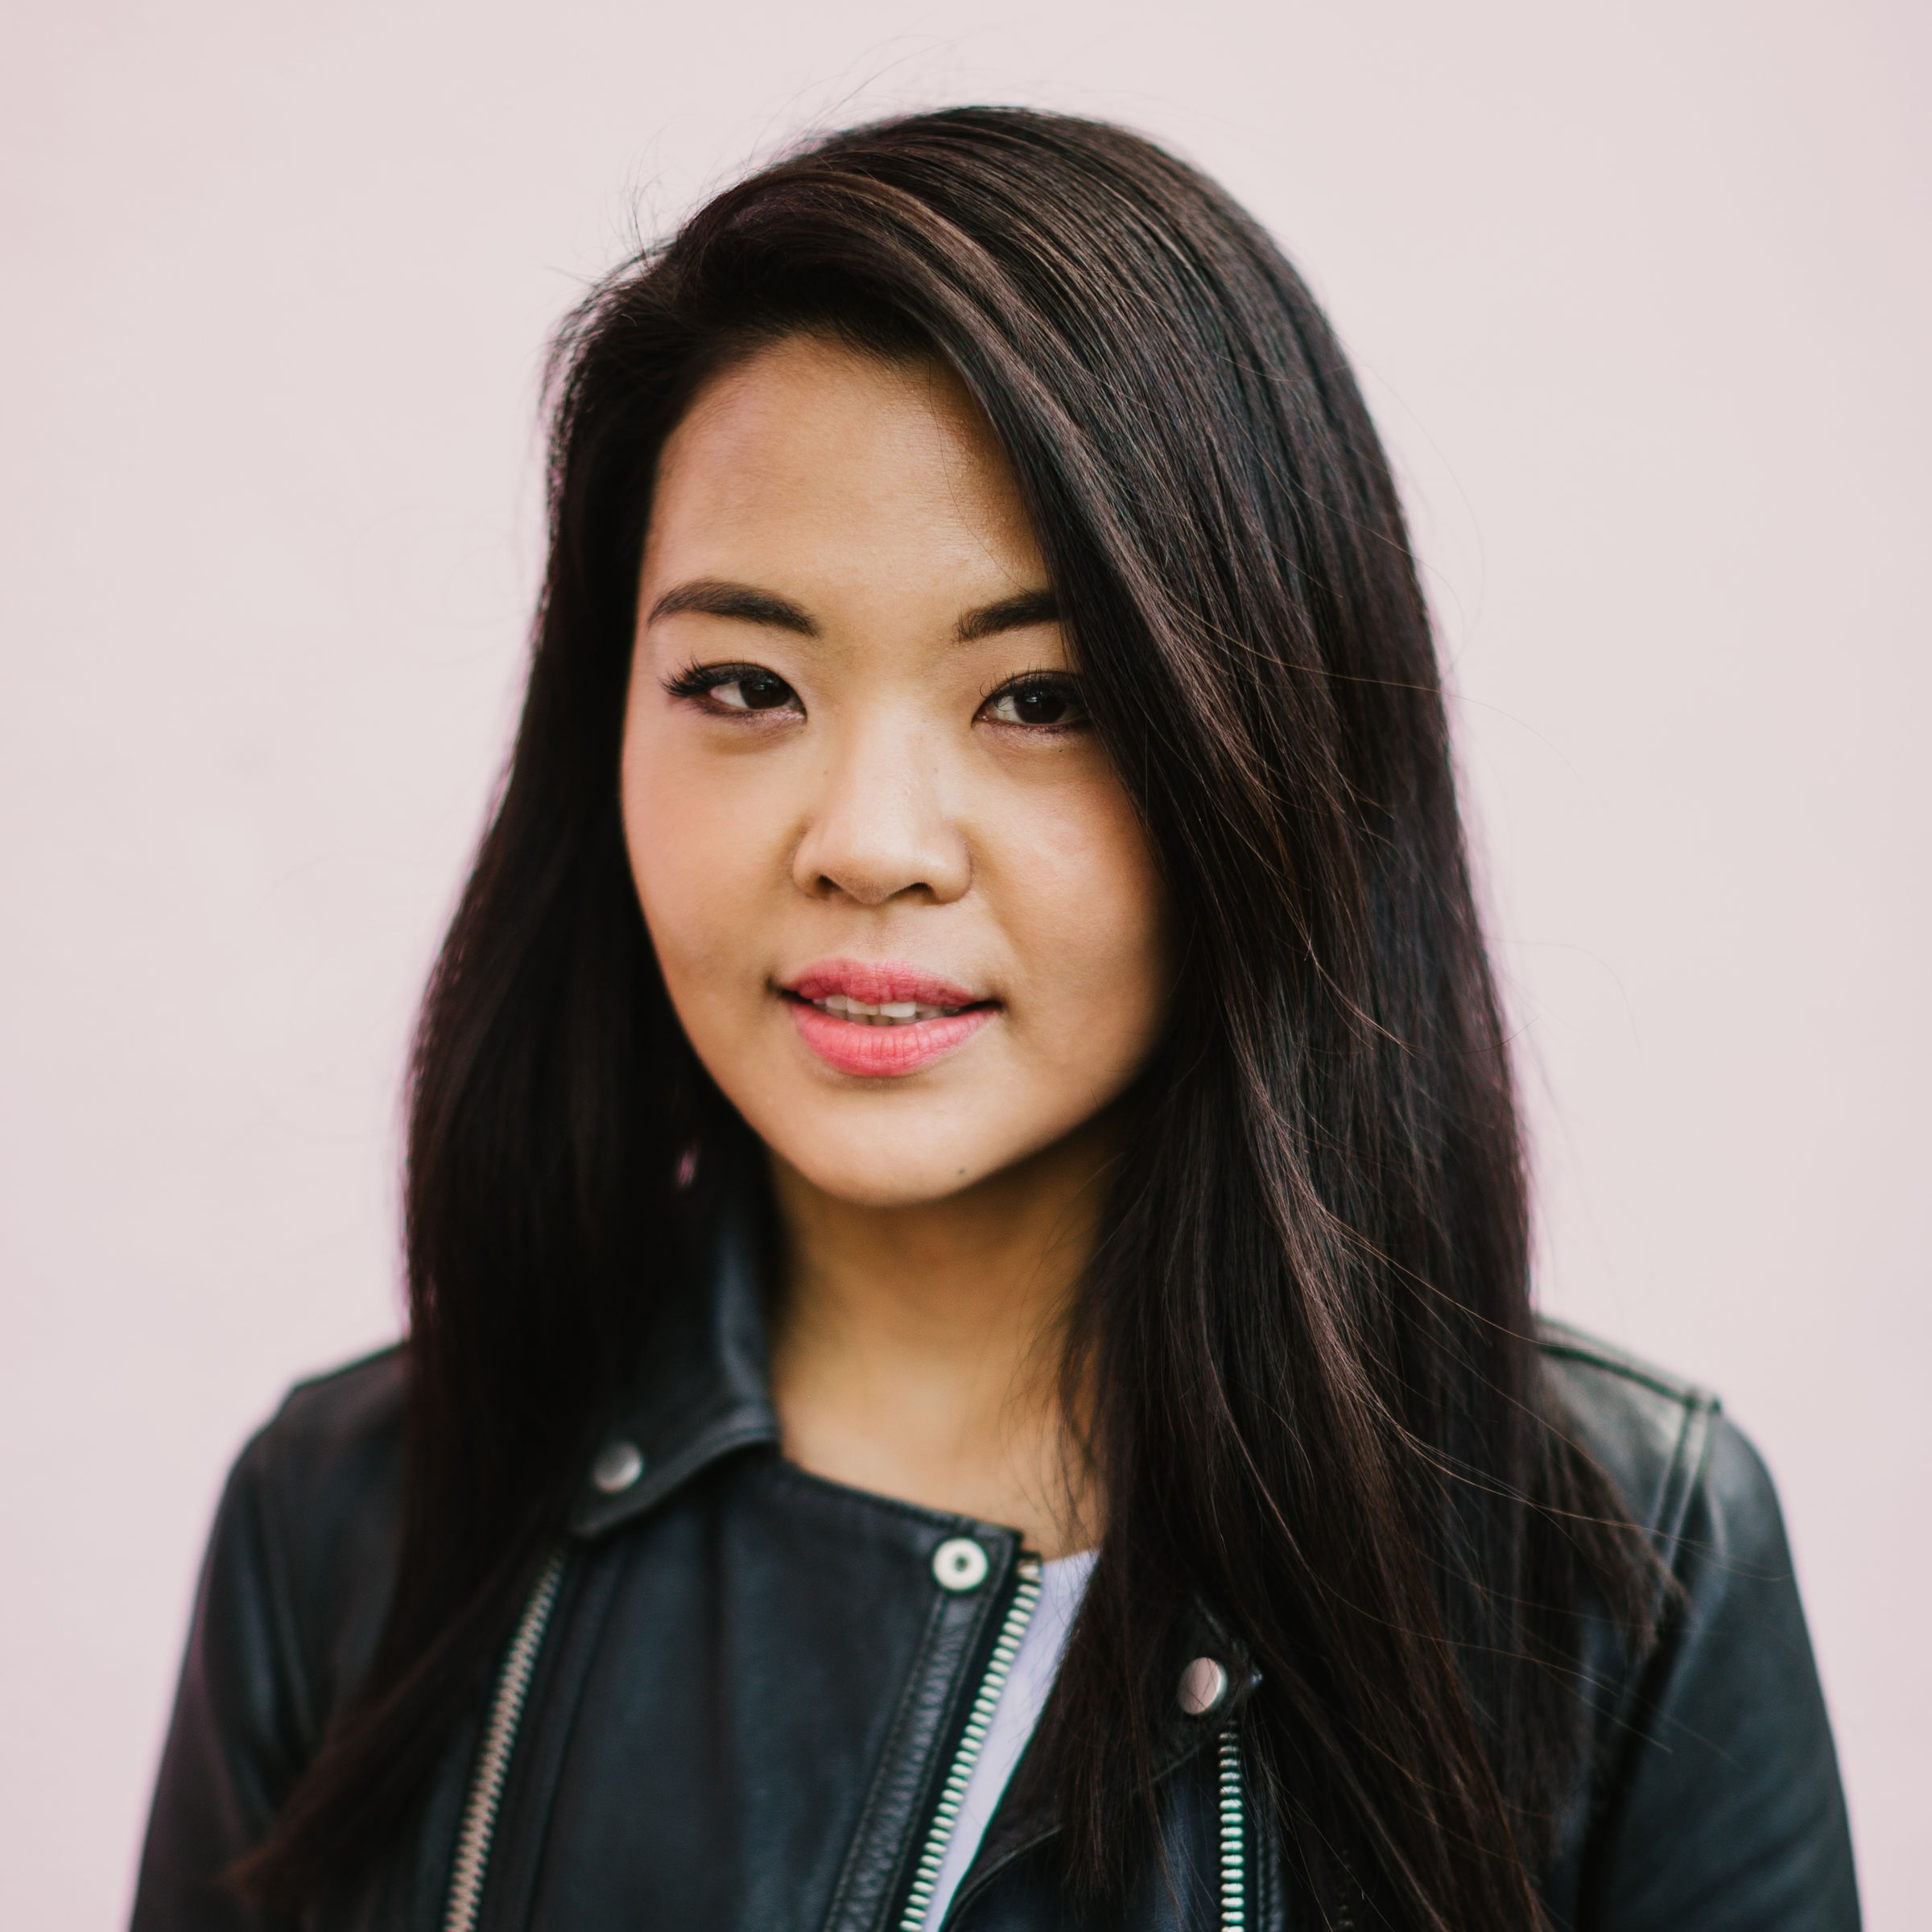 Mina Chae, Director of Marketing and Consumer Engagement at Farmacy Beauty -